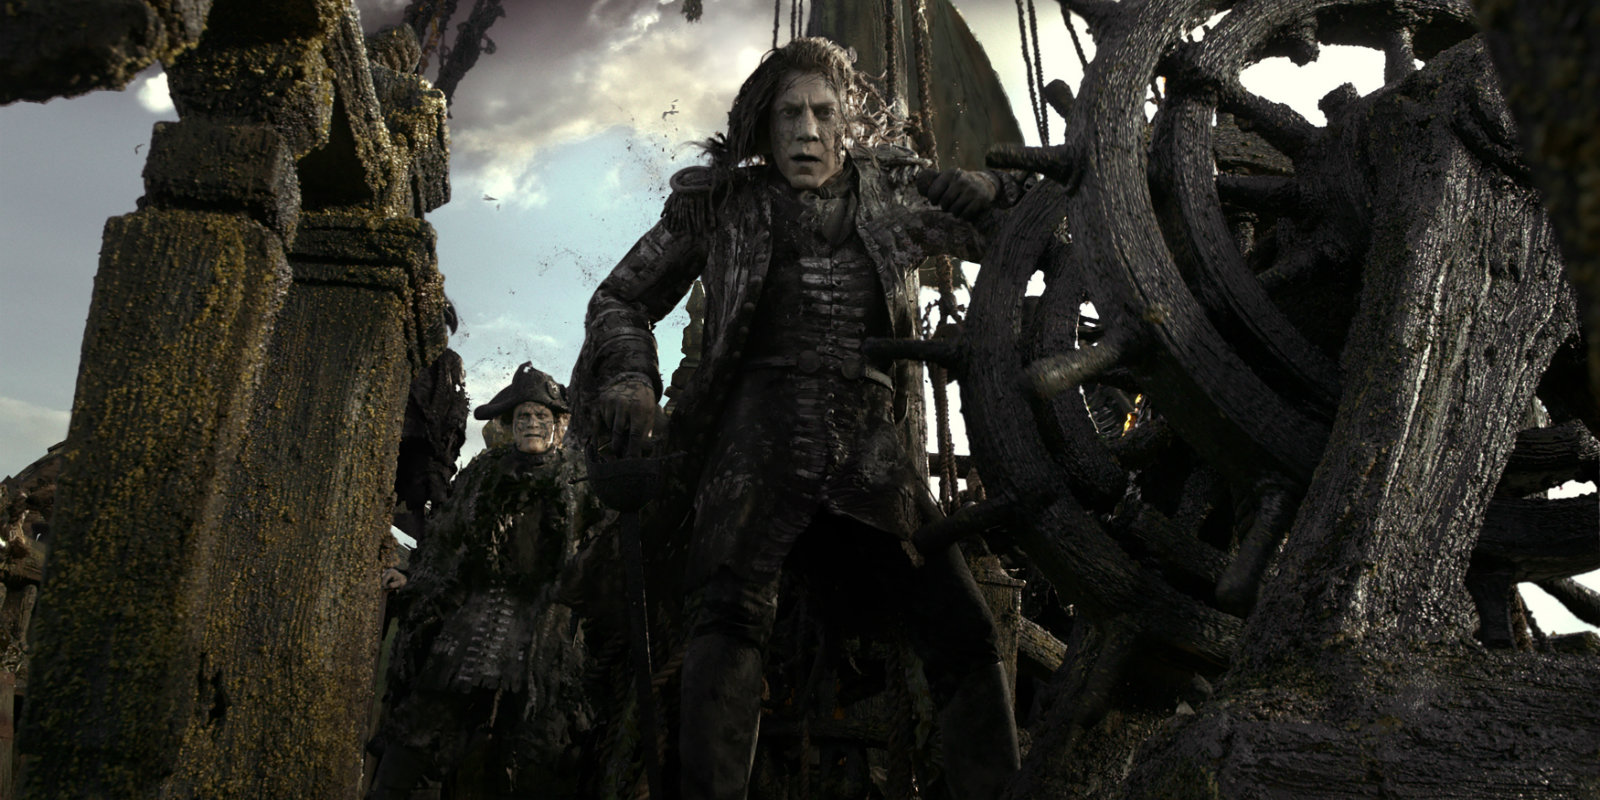 Caribbean Men: Javier Bardem Is On The Hunt In Pirates Of The Caribbean 5